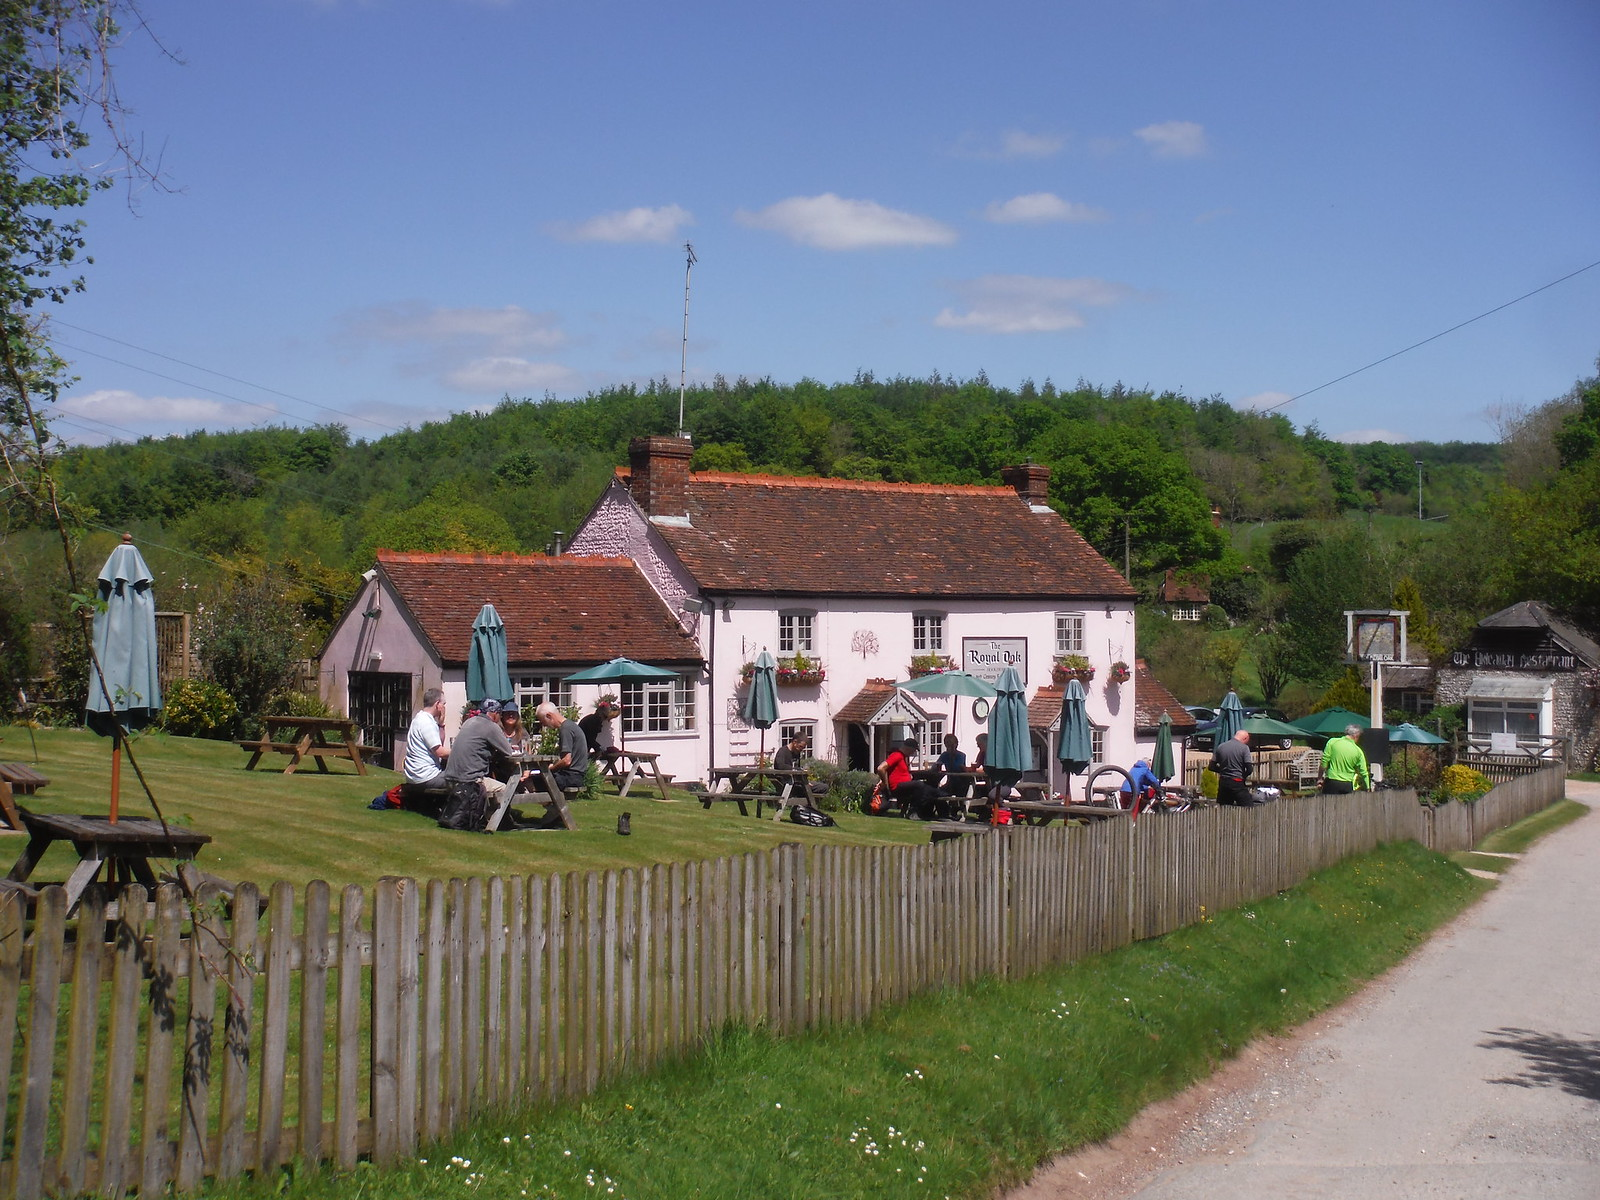 The Royal Oak, Hooksway SWC Walk Rowlands Castle Circular